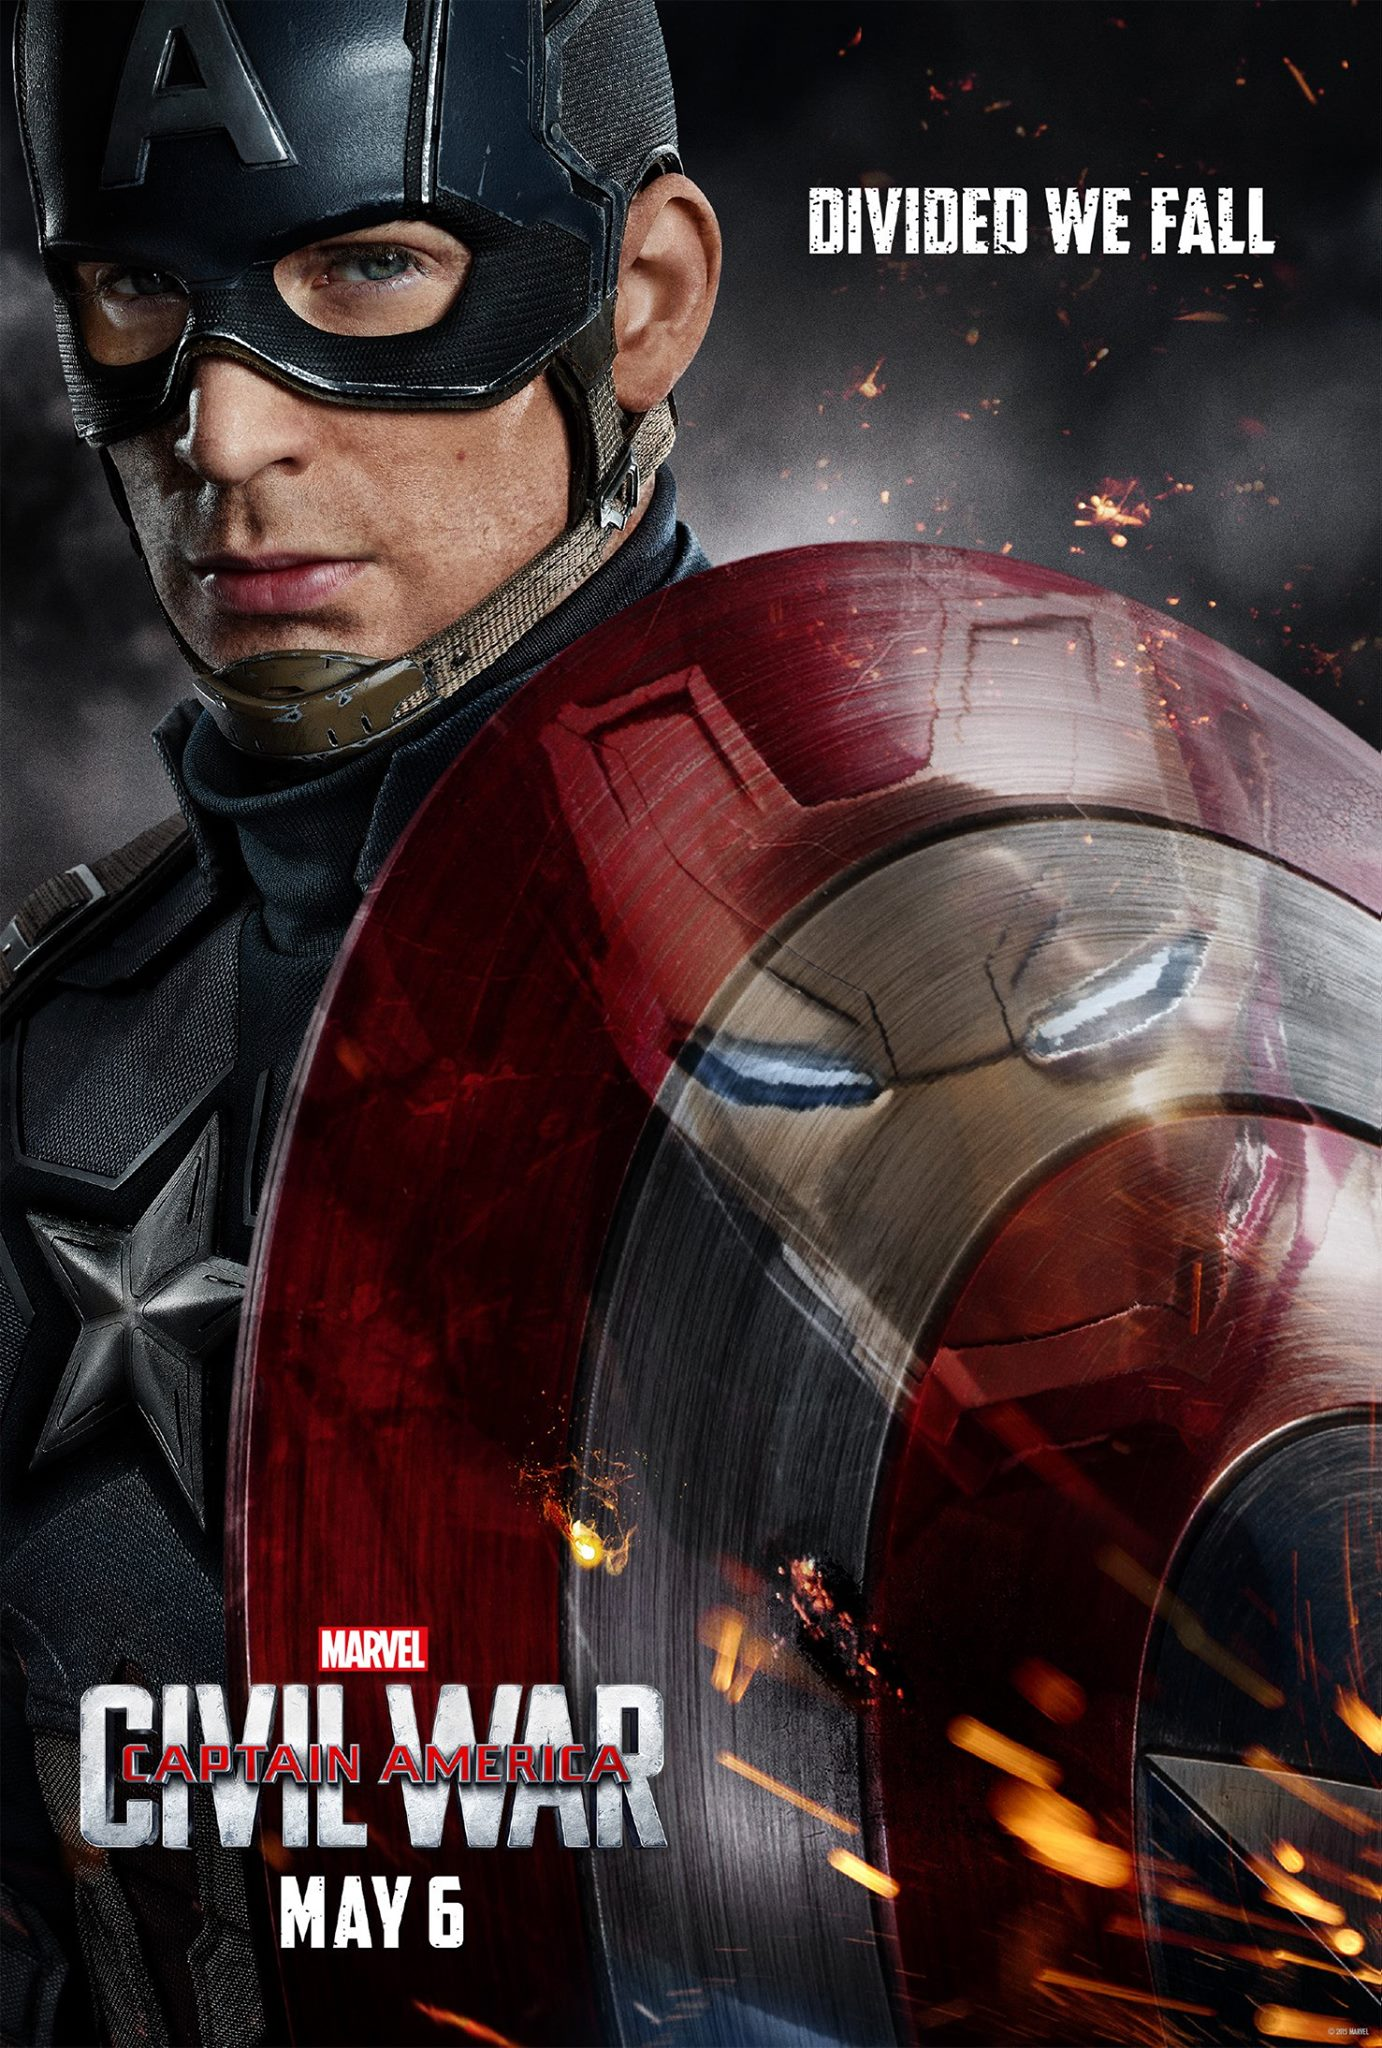 Poster de Captain America: Civil War réalisé avec Iron Man face à Captain America